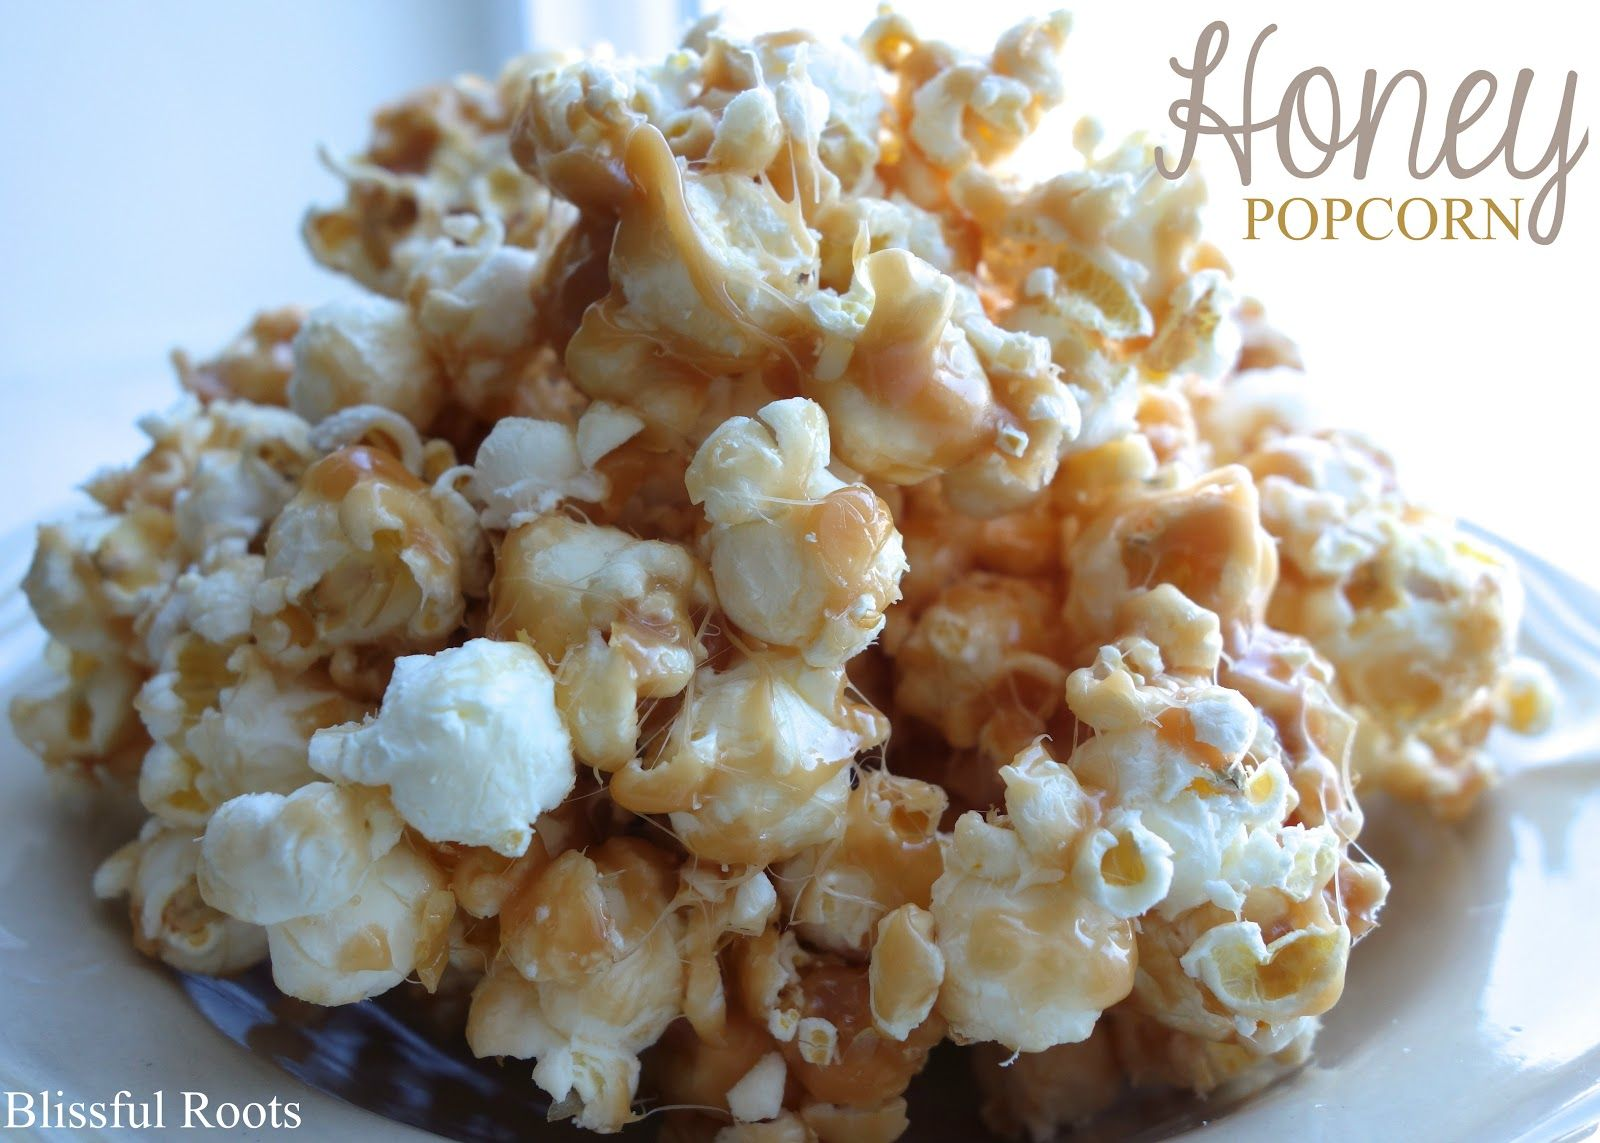 BLISSFUL ROOTS: Honey Popcorn